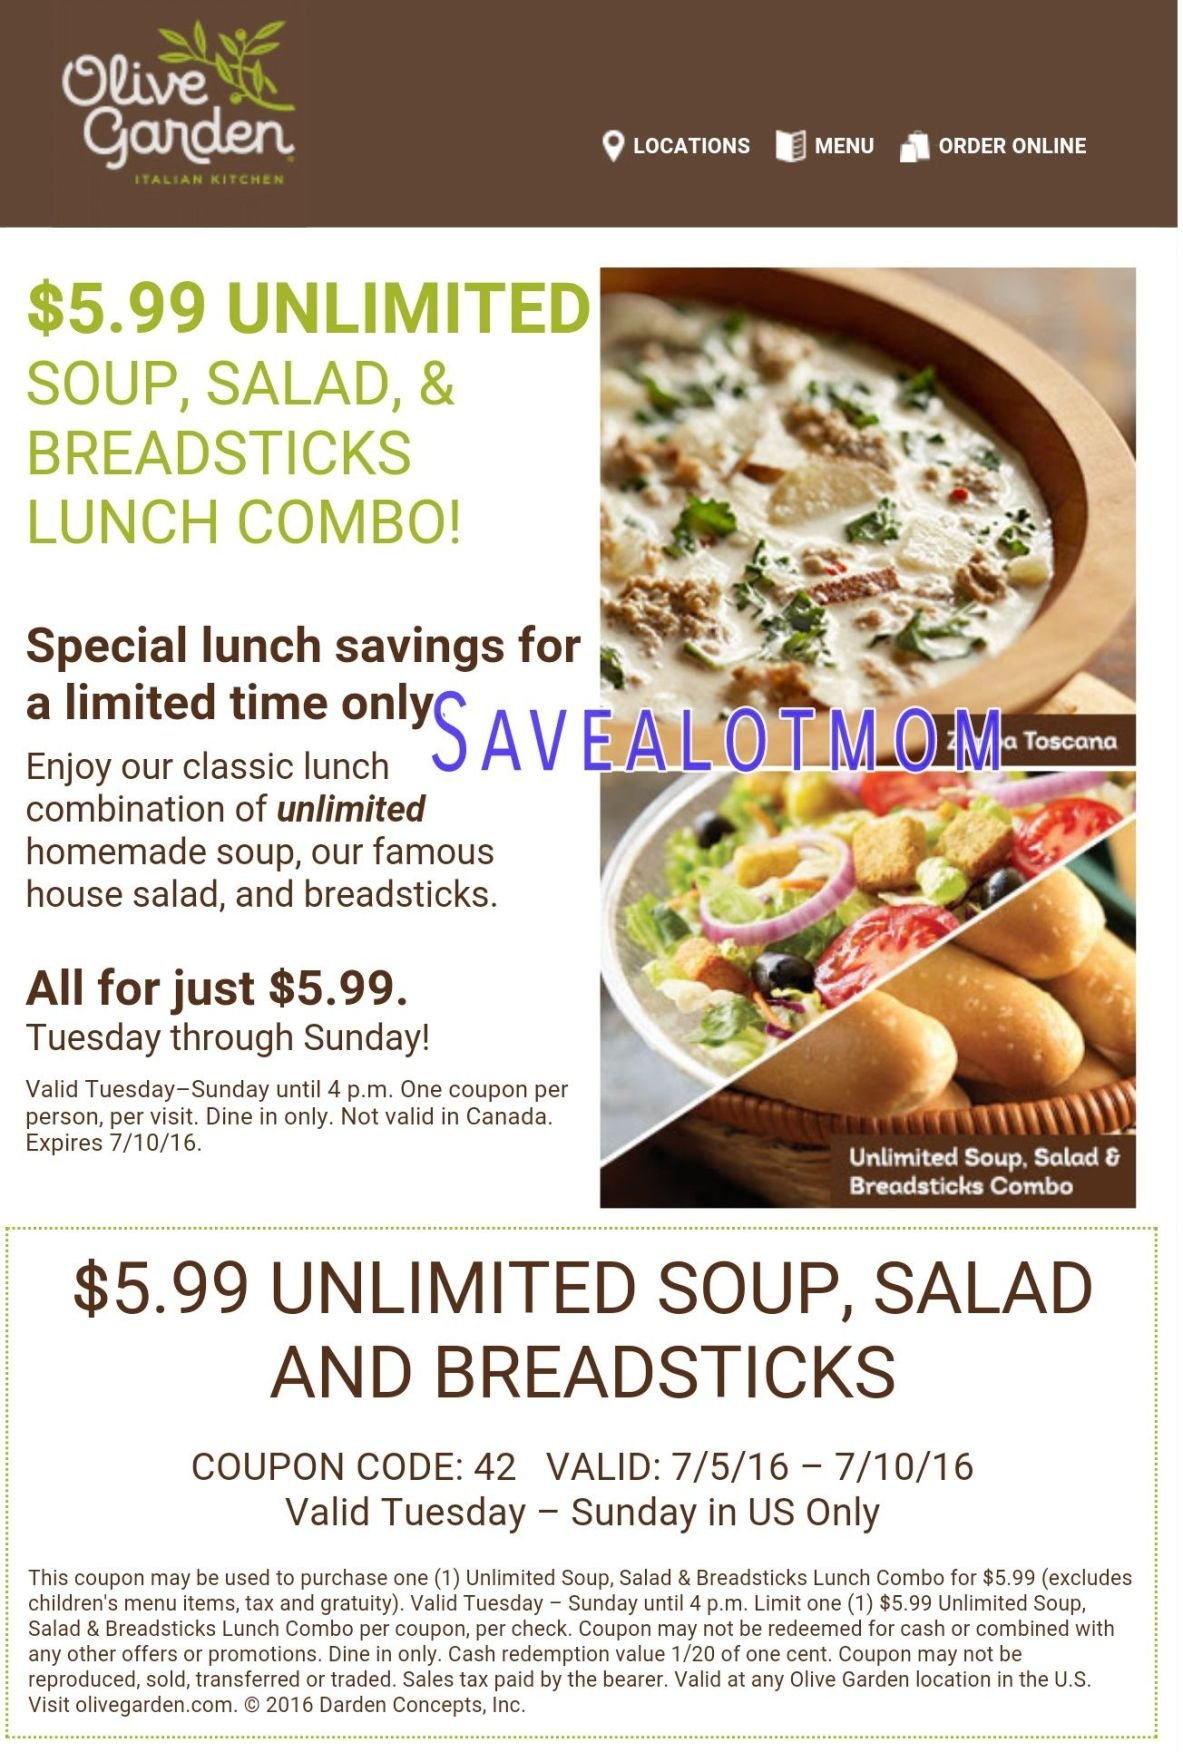 Olive Garden!$5.99 For UNLIMITED Soup, Salad And Breadsticks!